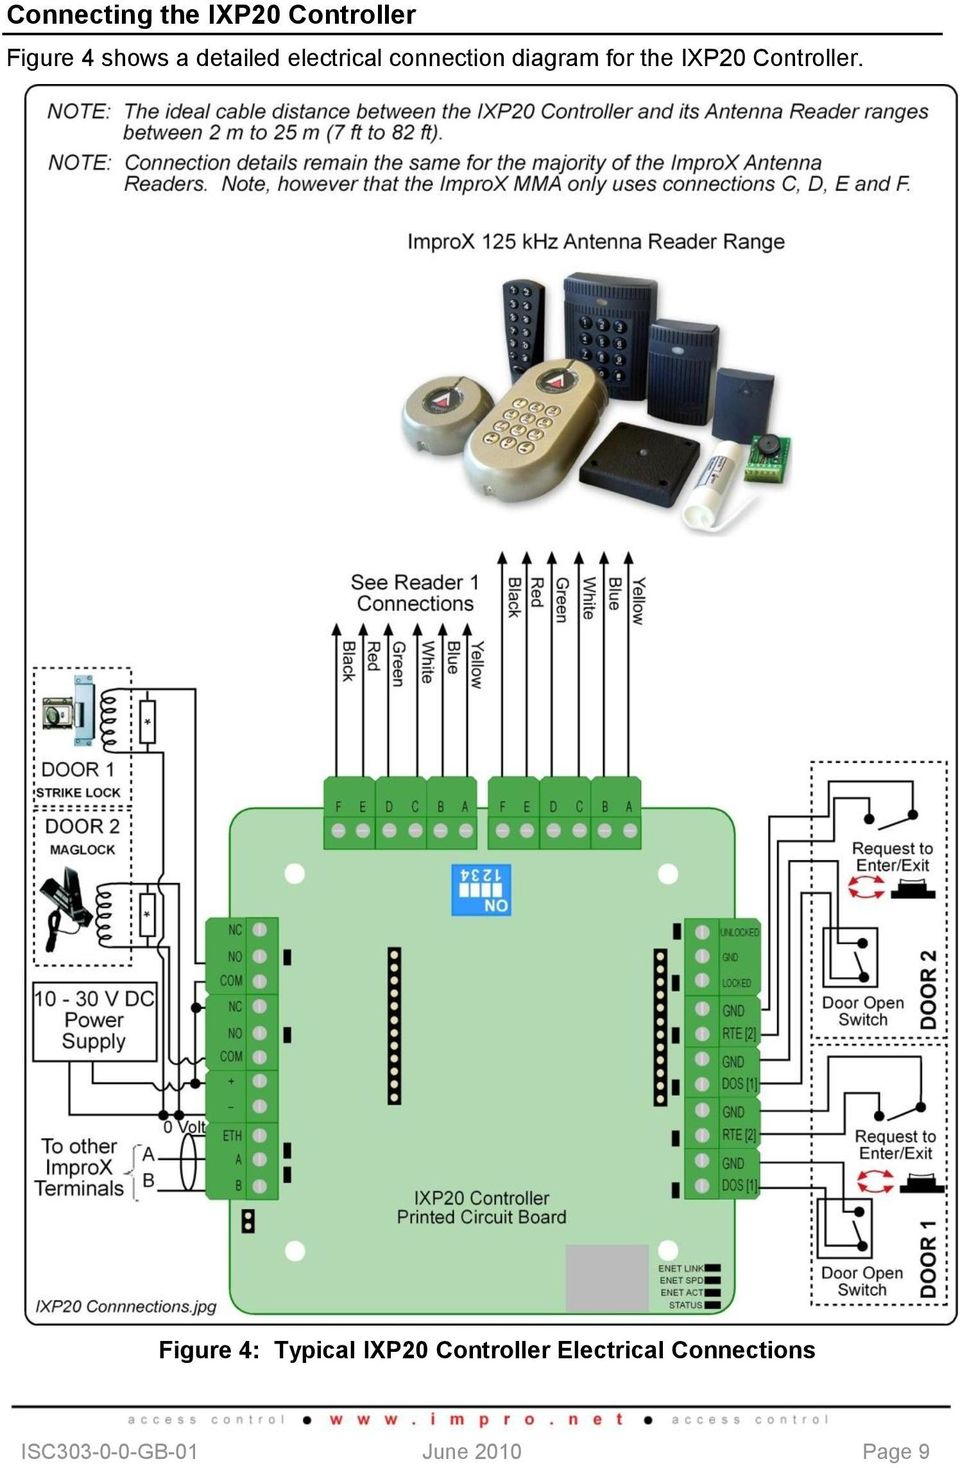 How To Power A Power Control On An Ip40 (Ipl) With A Power Supply (Iplug)  With An Ip20 Controller (Iphones) With Power Control (Power Control) With  No Antenna) With The Ip20 (Power) -DocPlayer.net